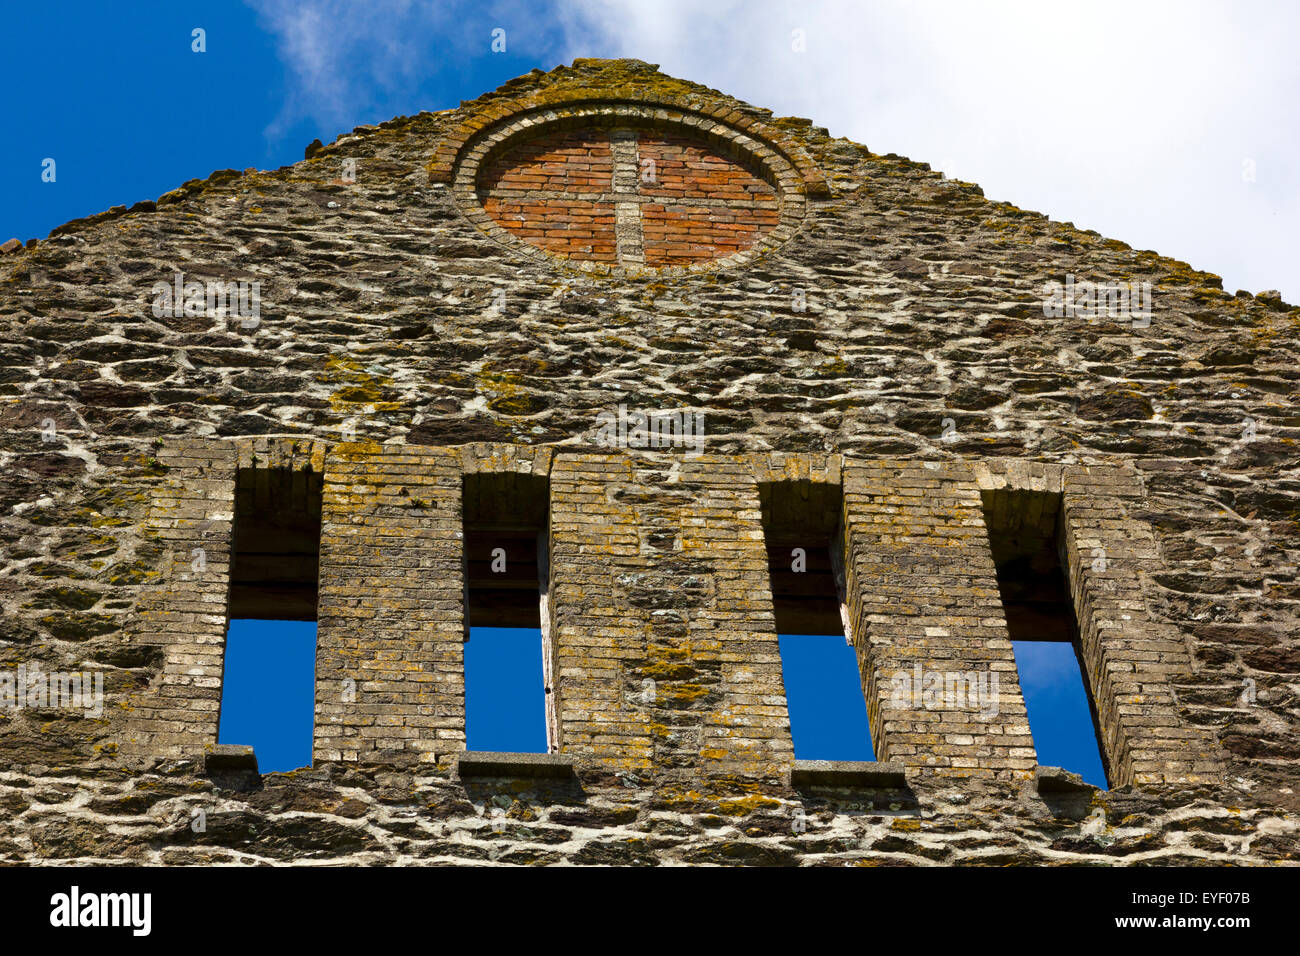 Detail of Four Window Spaces, Inlaid Cross, Arched Lintel and Wall Construction at the Ruined Gable End, Wheal Rose - Stock Image